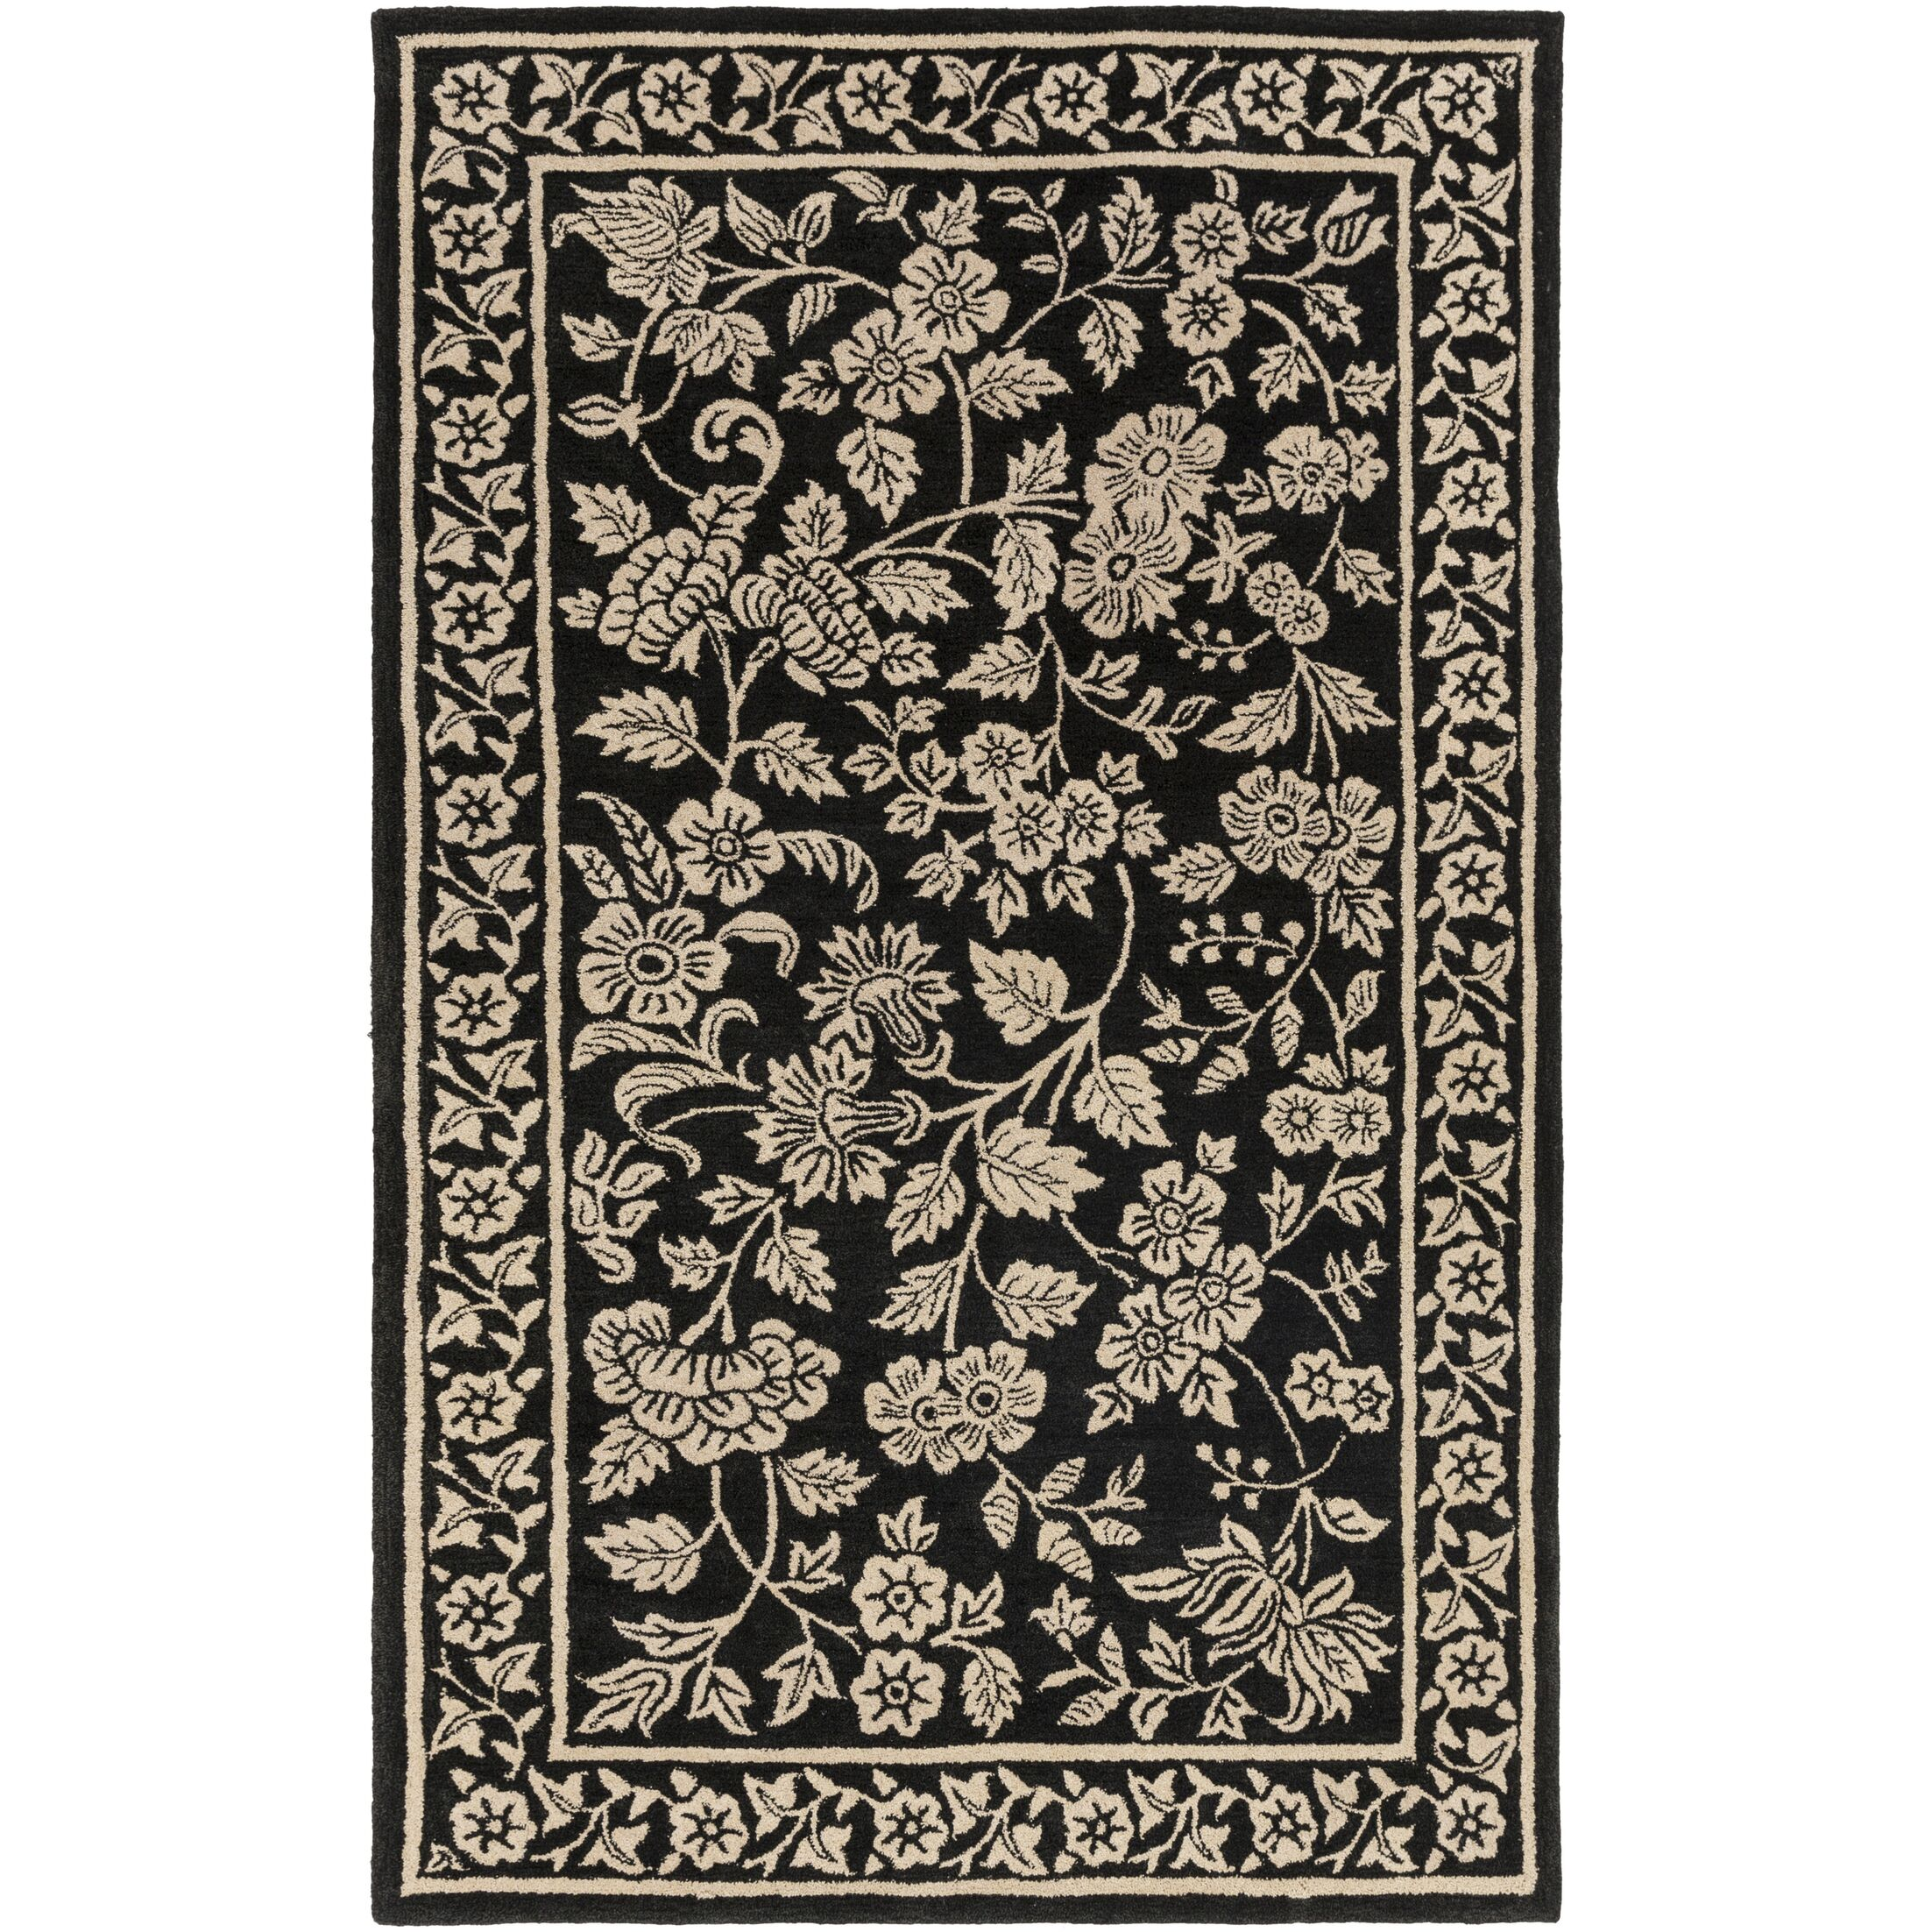 Smithsonian Hand-Tufted Black/Neutral Area Rug Rug Size: Rectangle 9' x 13'